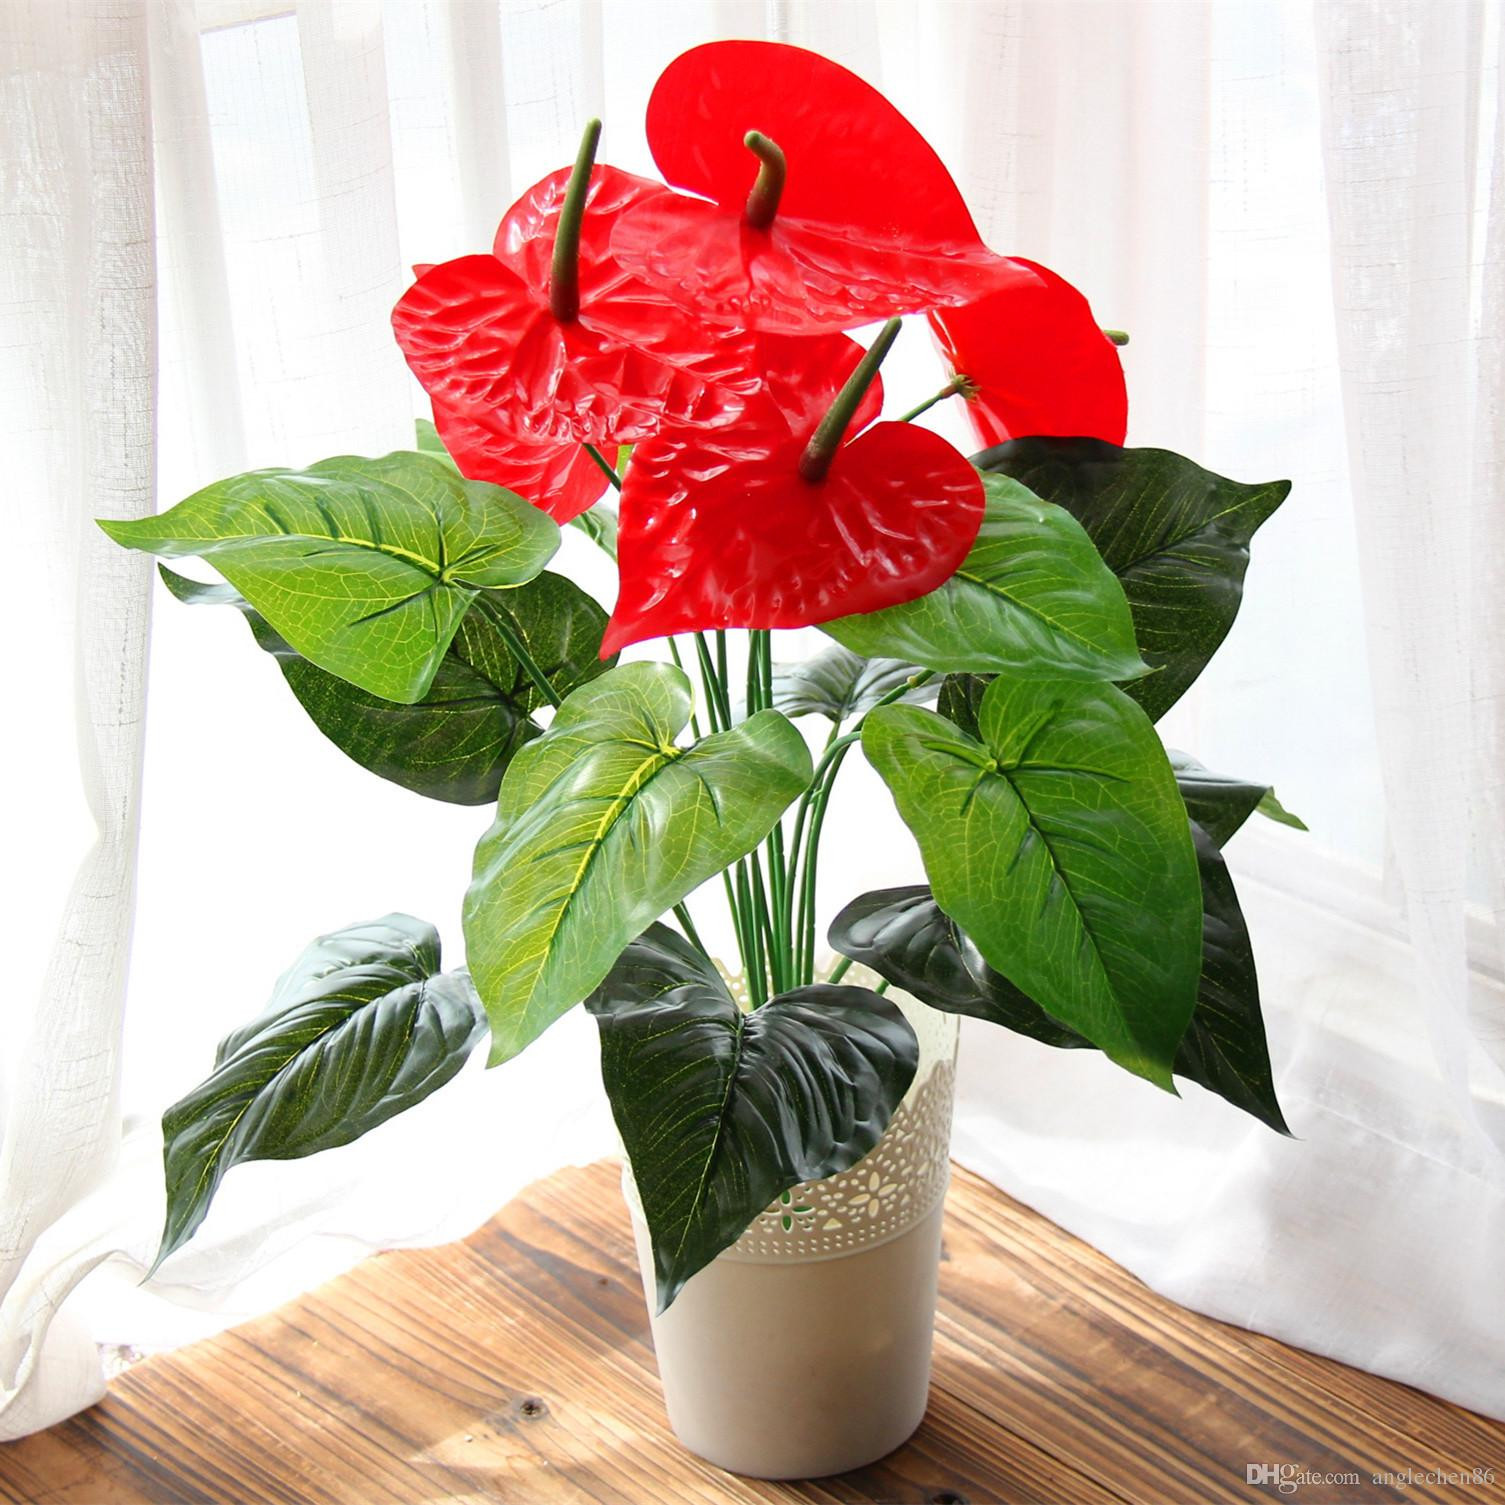 Best Great 18 Heads Artificial Flower Small Potted Plant Silk Suit Potted Anthurium fice Home Garden Decoration Bonsai Wholesale Under $5 03